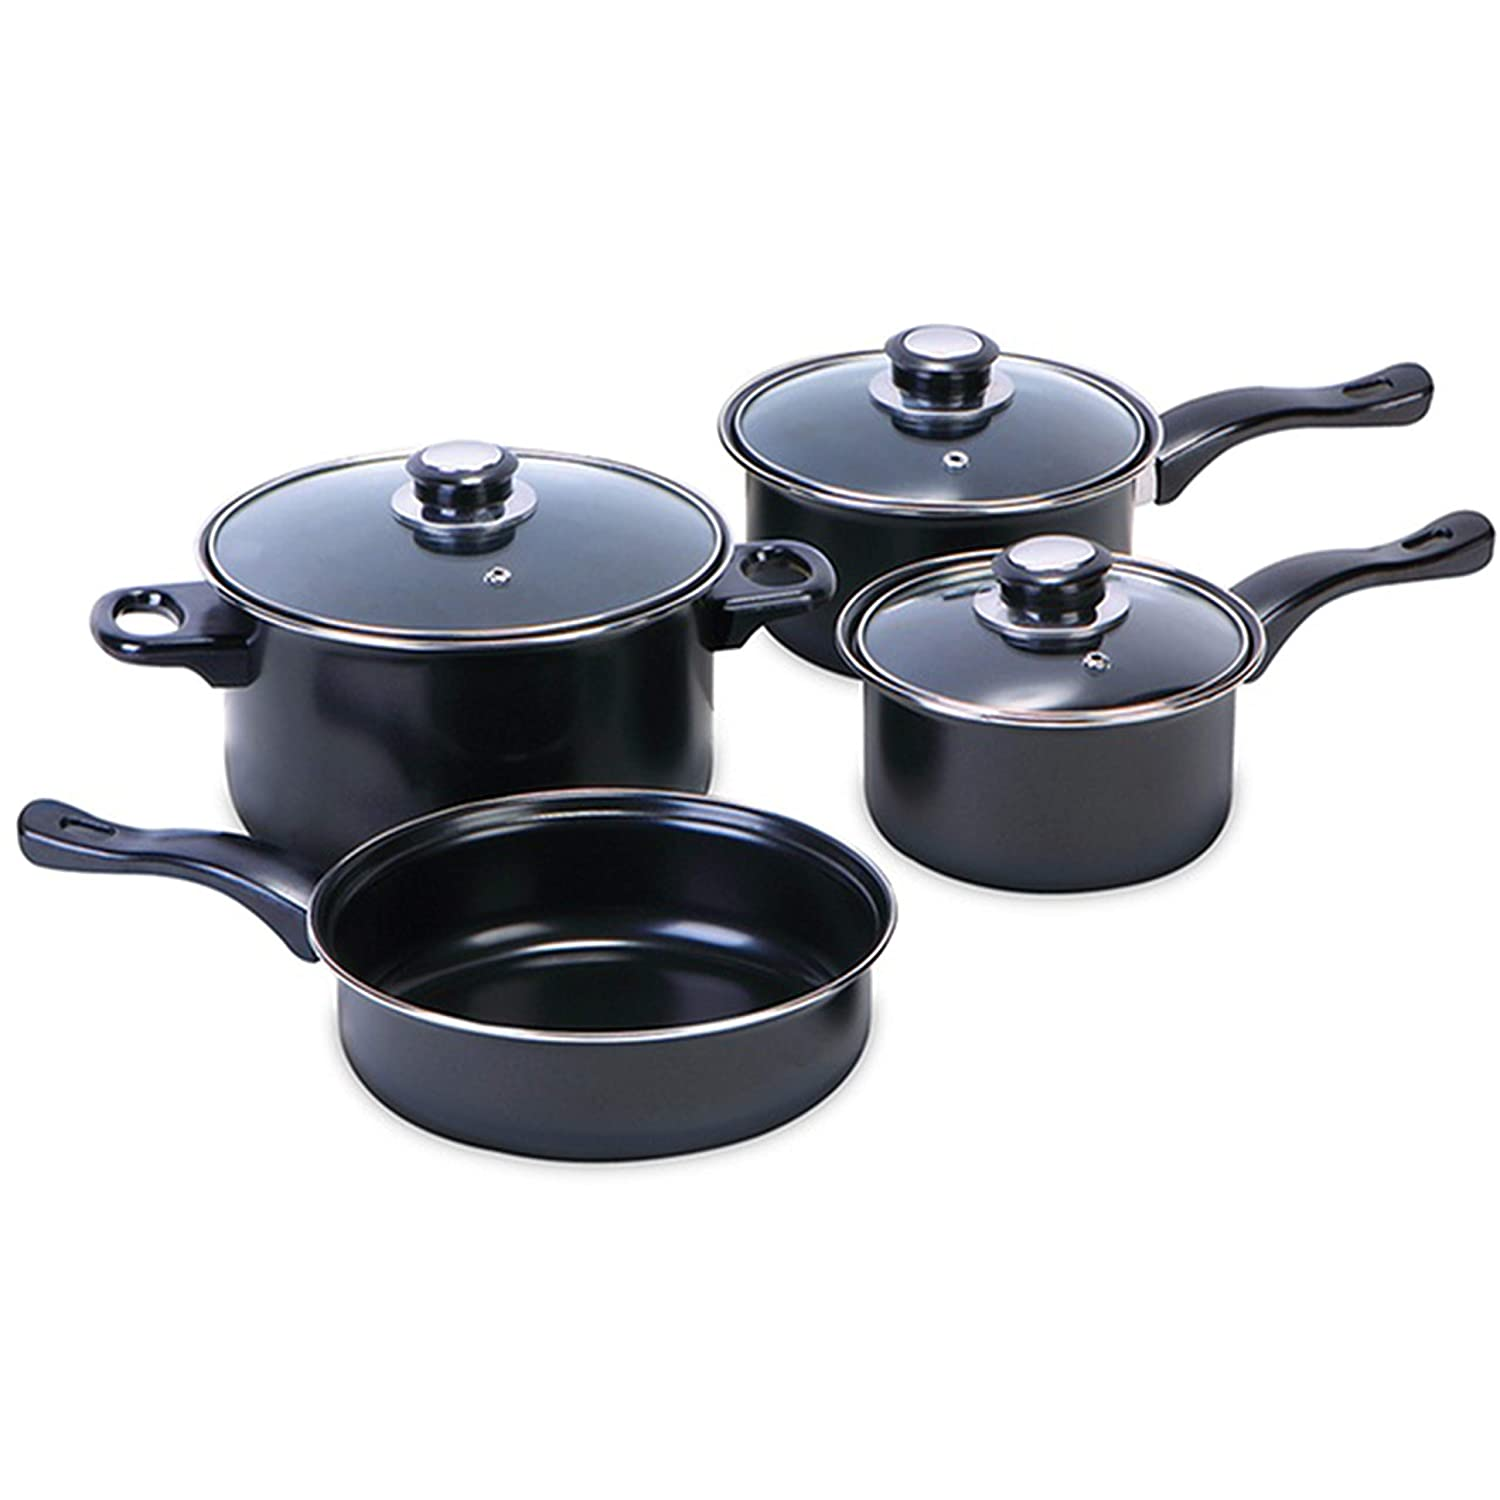 7 Pieces Carbon Steel Non-Stick Cookware Set - Sauce Pan, Frying Pan, Stockpot Casserole Dutch Oven with Glass Lid GEEZY